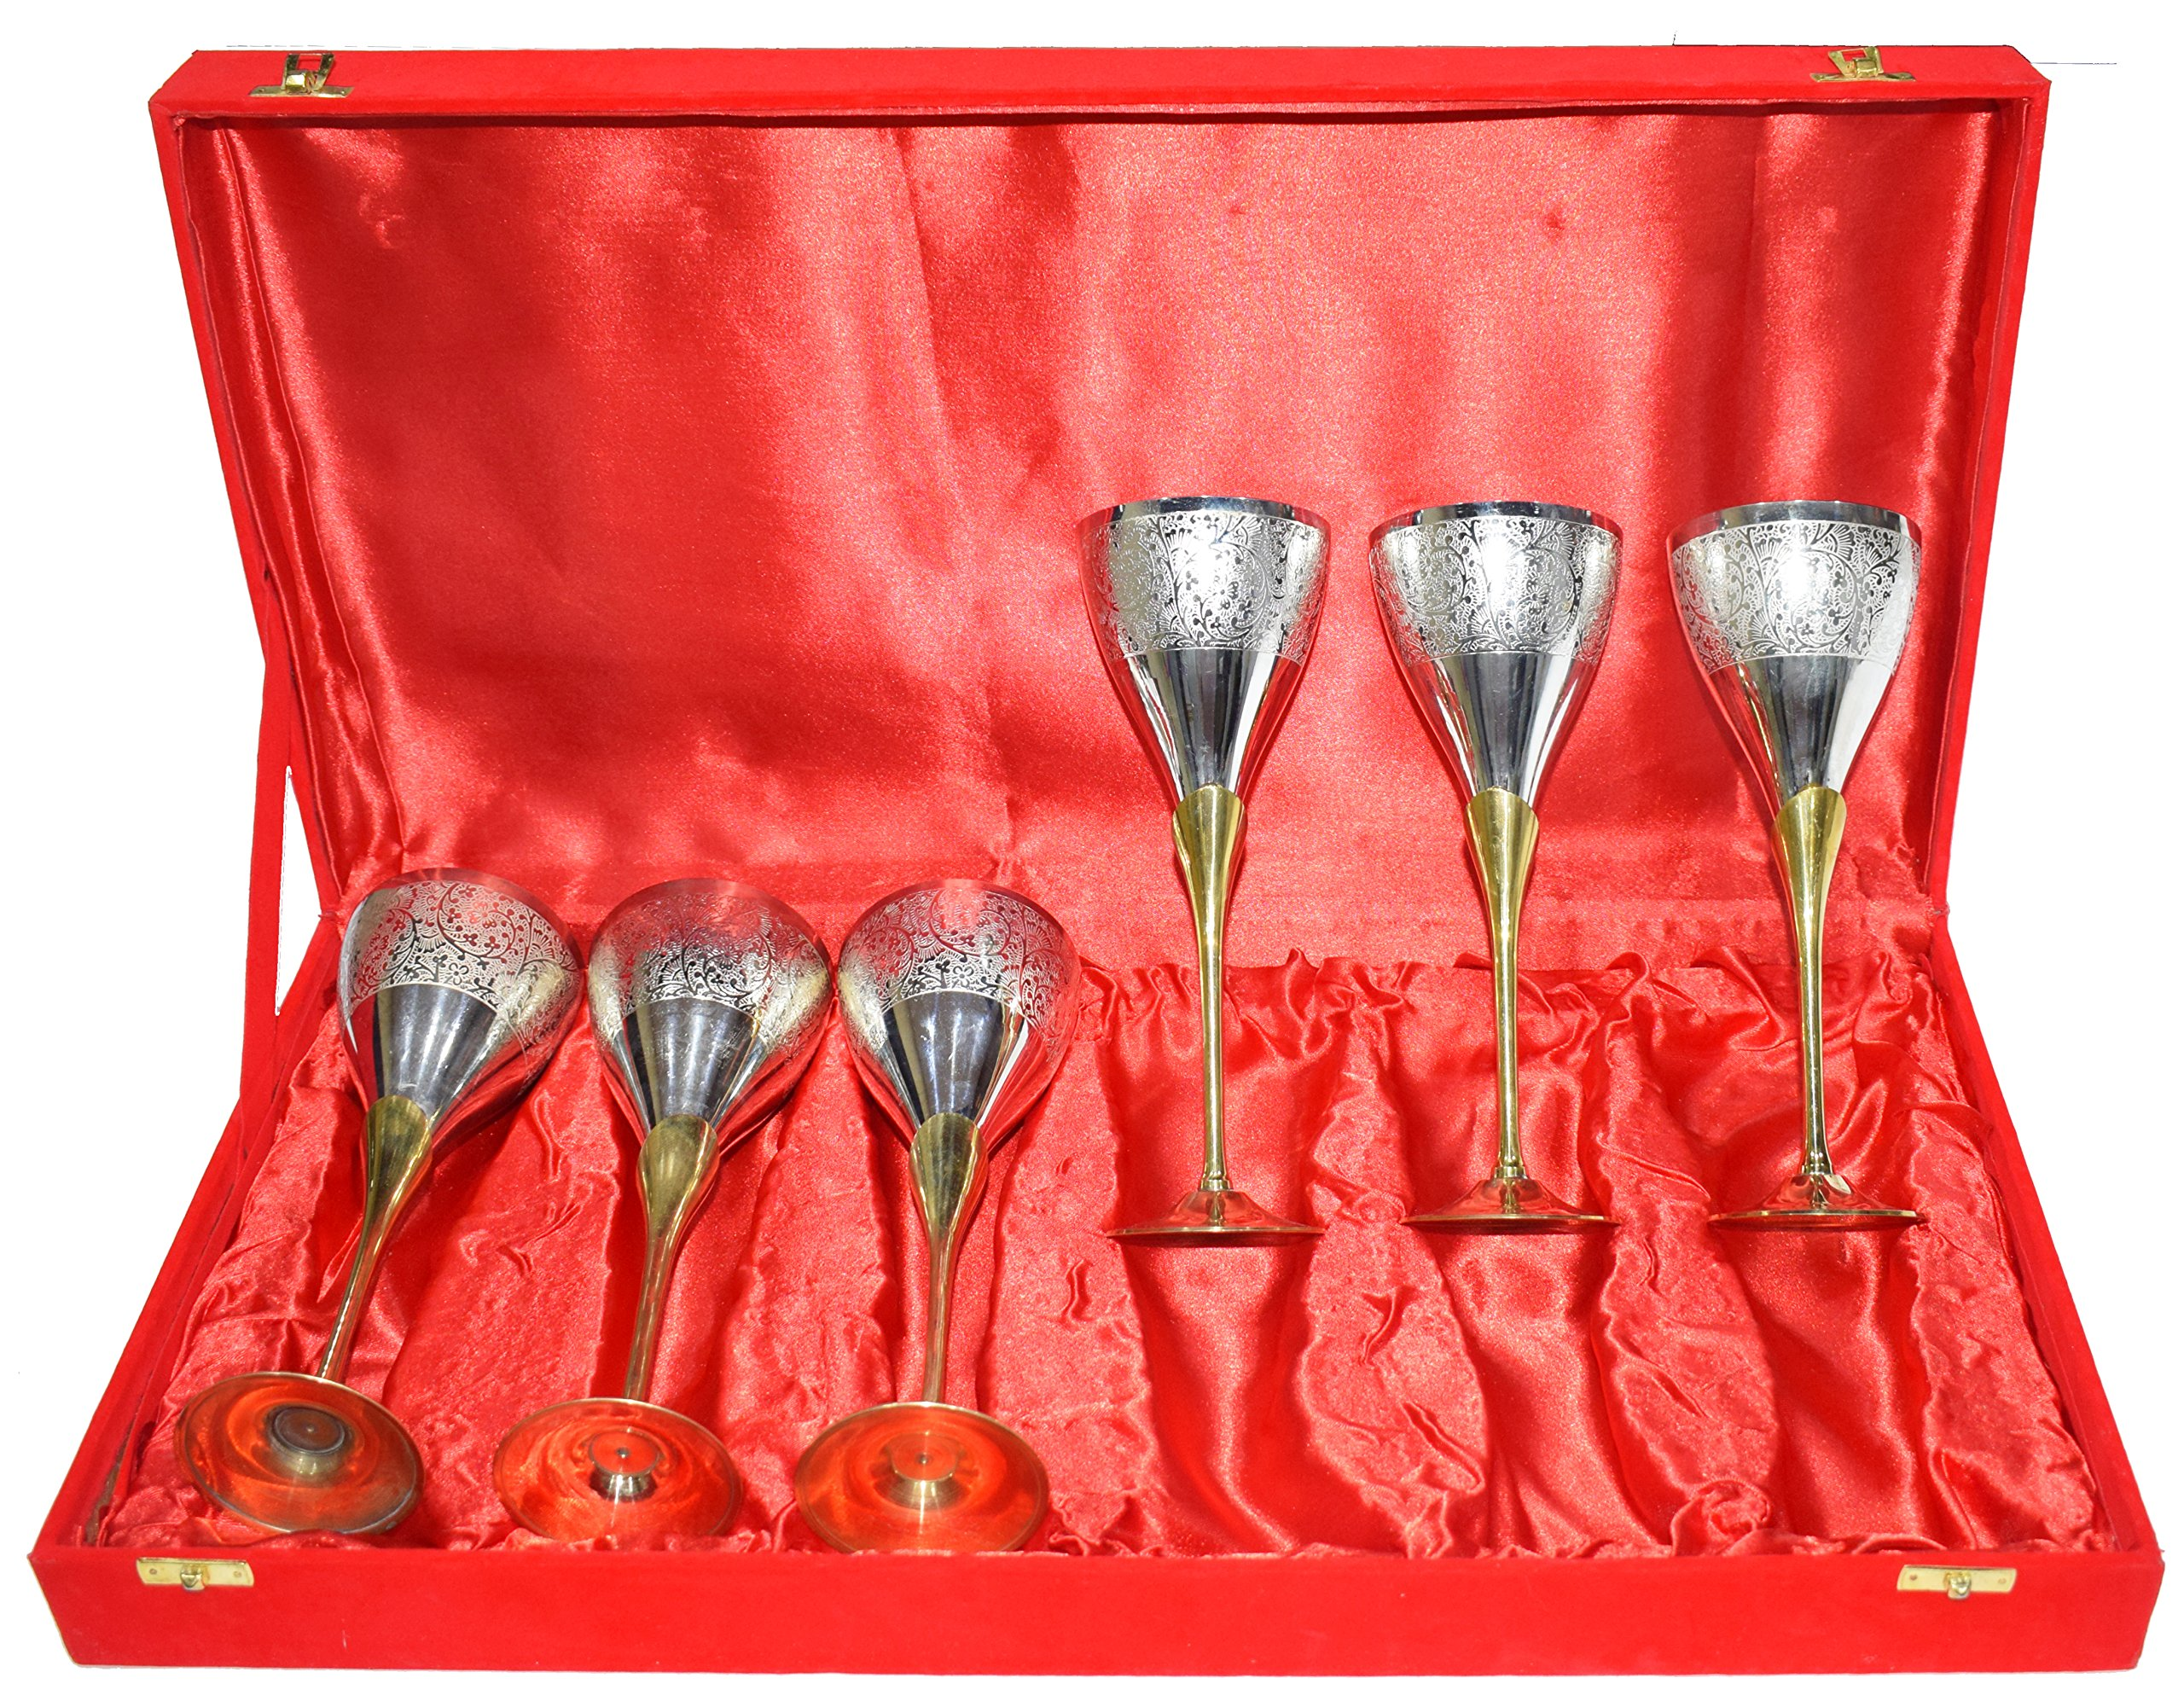 Gold Silver Plated Pure Brass Engraved Premium Goblet Champagne Wine Glass With Red Velvet Box Set of 6 Party Glass Dining Set Business Gift.. Perfect Christmas Gift …